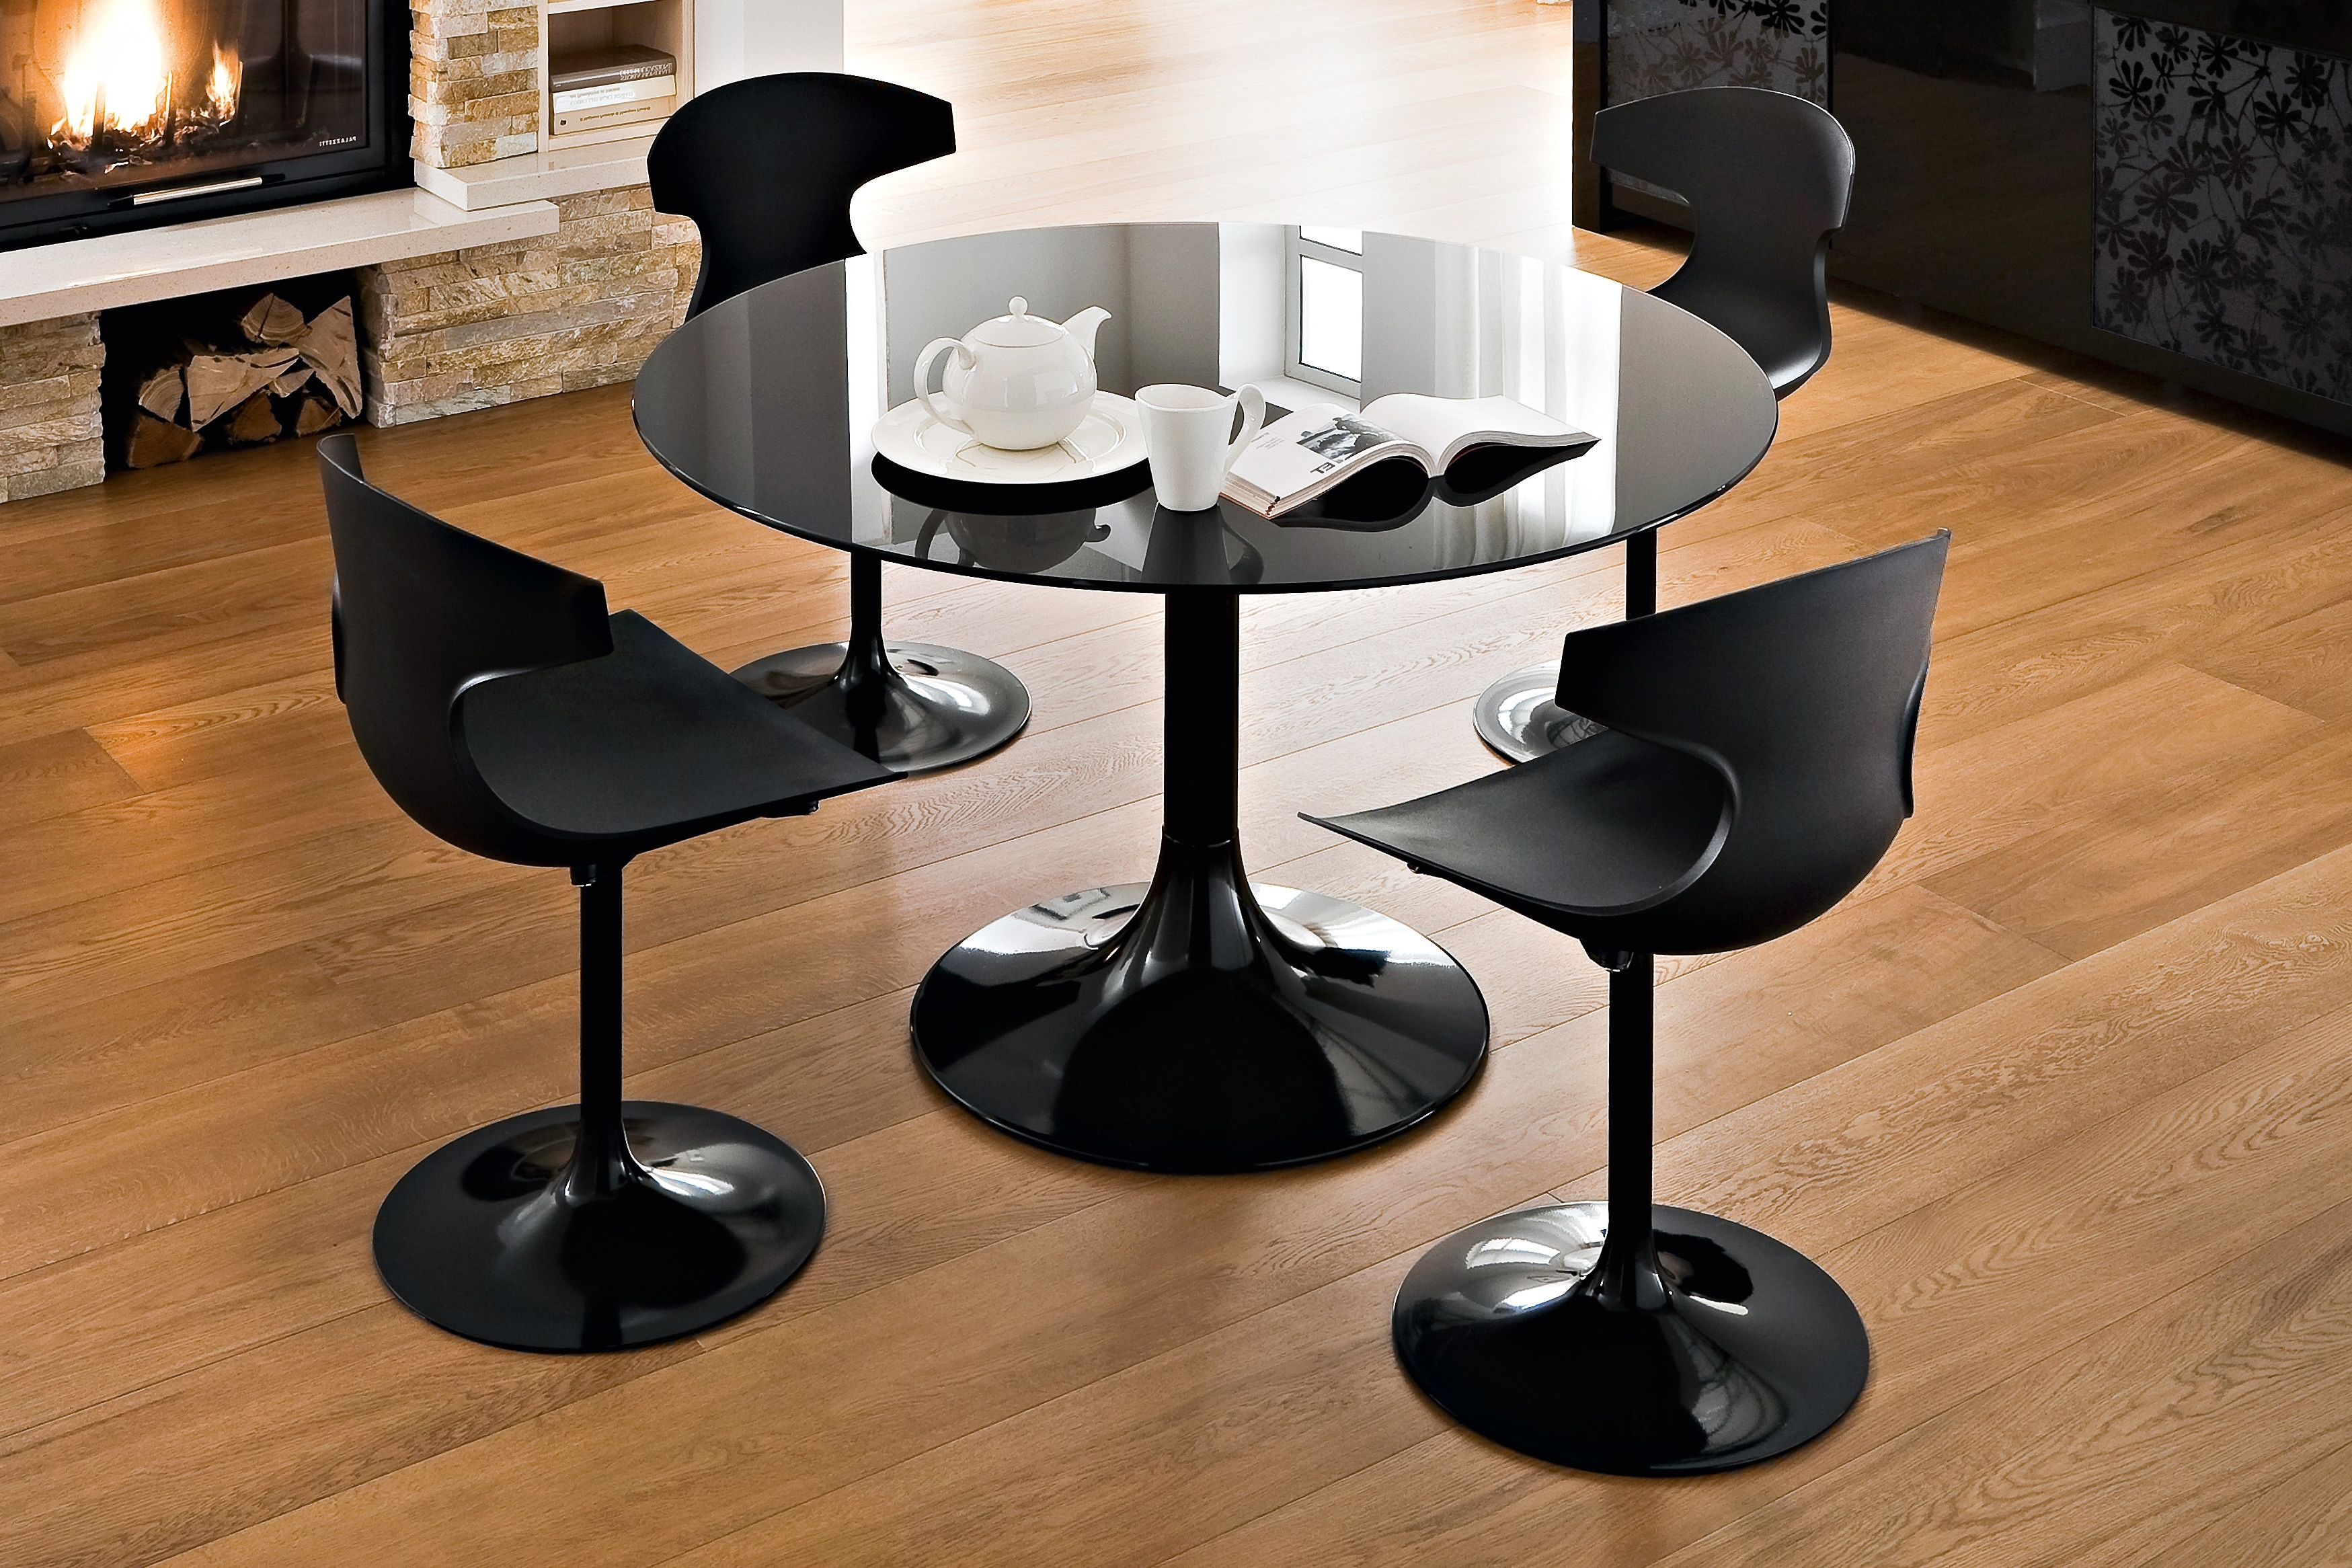 Round Black Glass Dining Tables And Chairs Within Most Current Round Black Glass Dining Table With Round Base Addedfour Black (View 22 of 25)